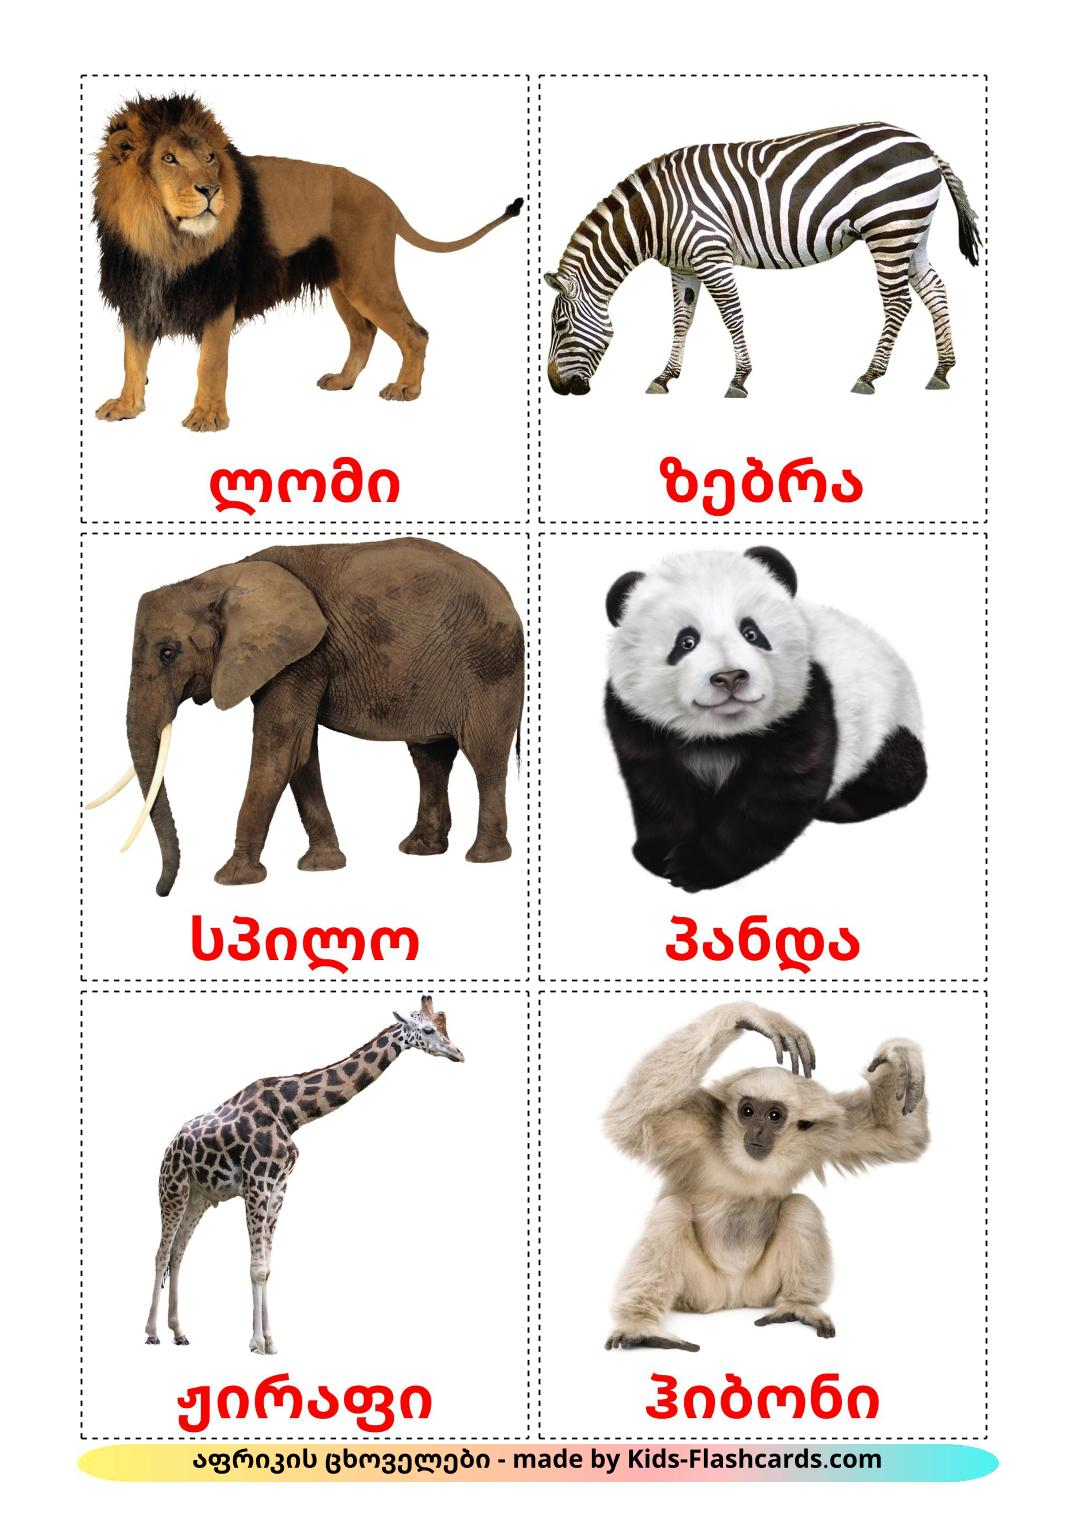 Jungle animals - 21 Free Printable georgian Flashcards